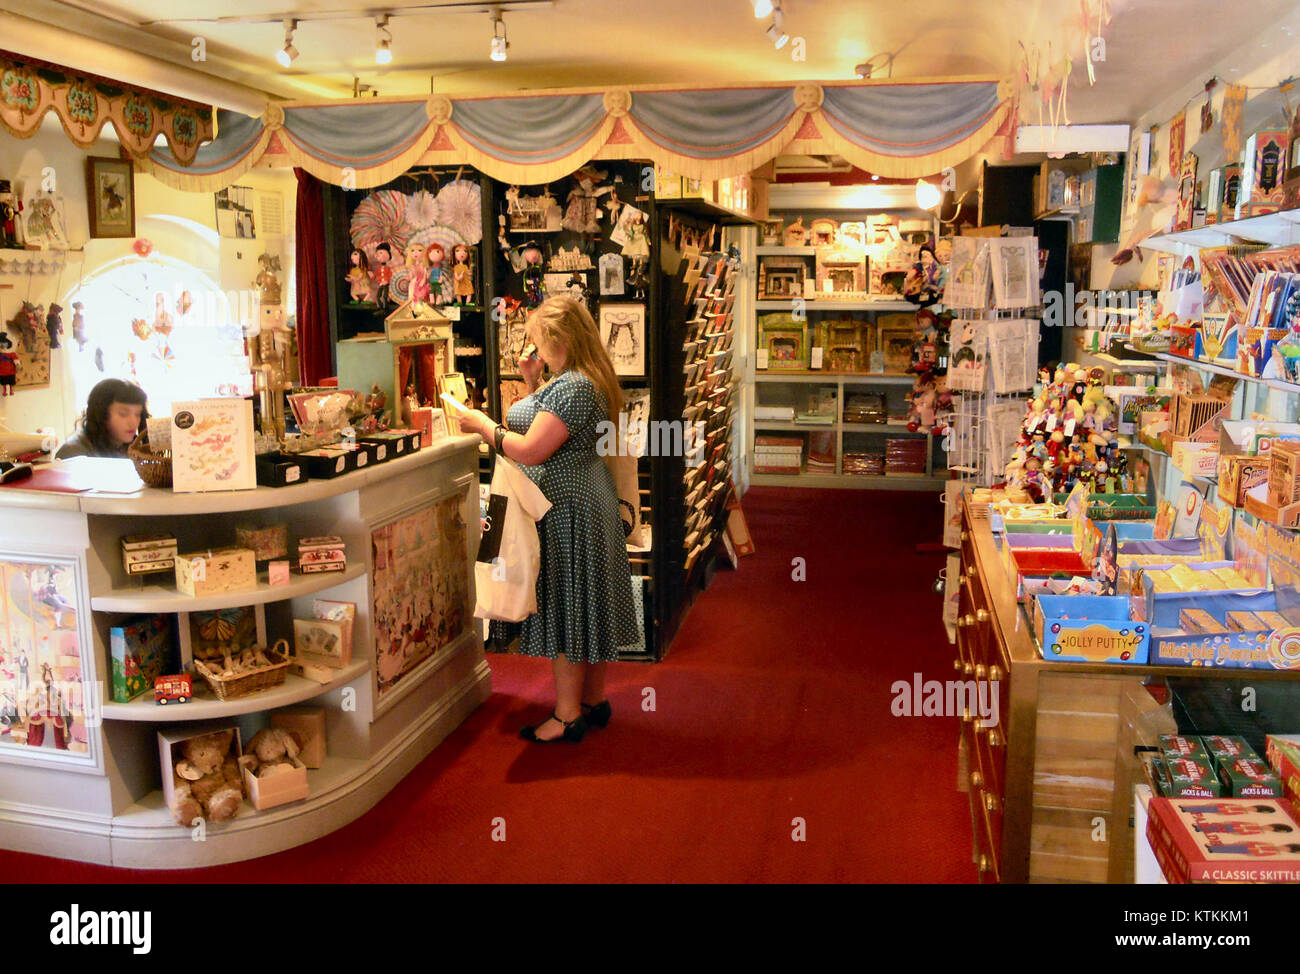 Toy Shop Interior Stock Photos Toy Shop Interior Stock Images Alamy